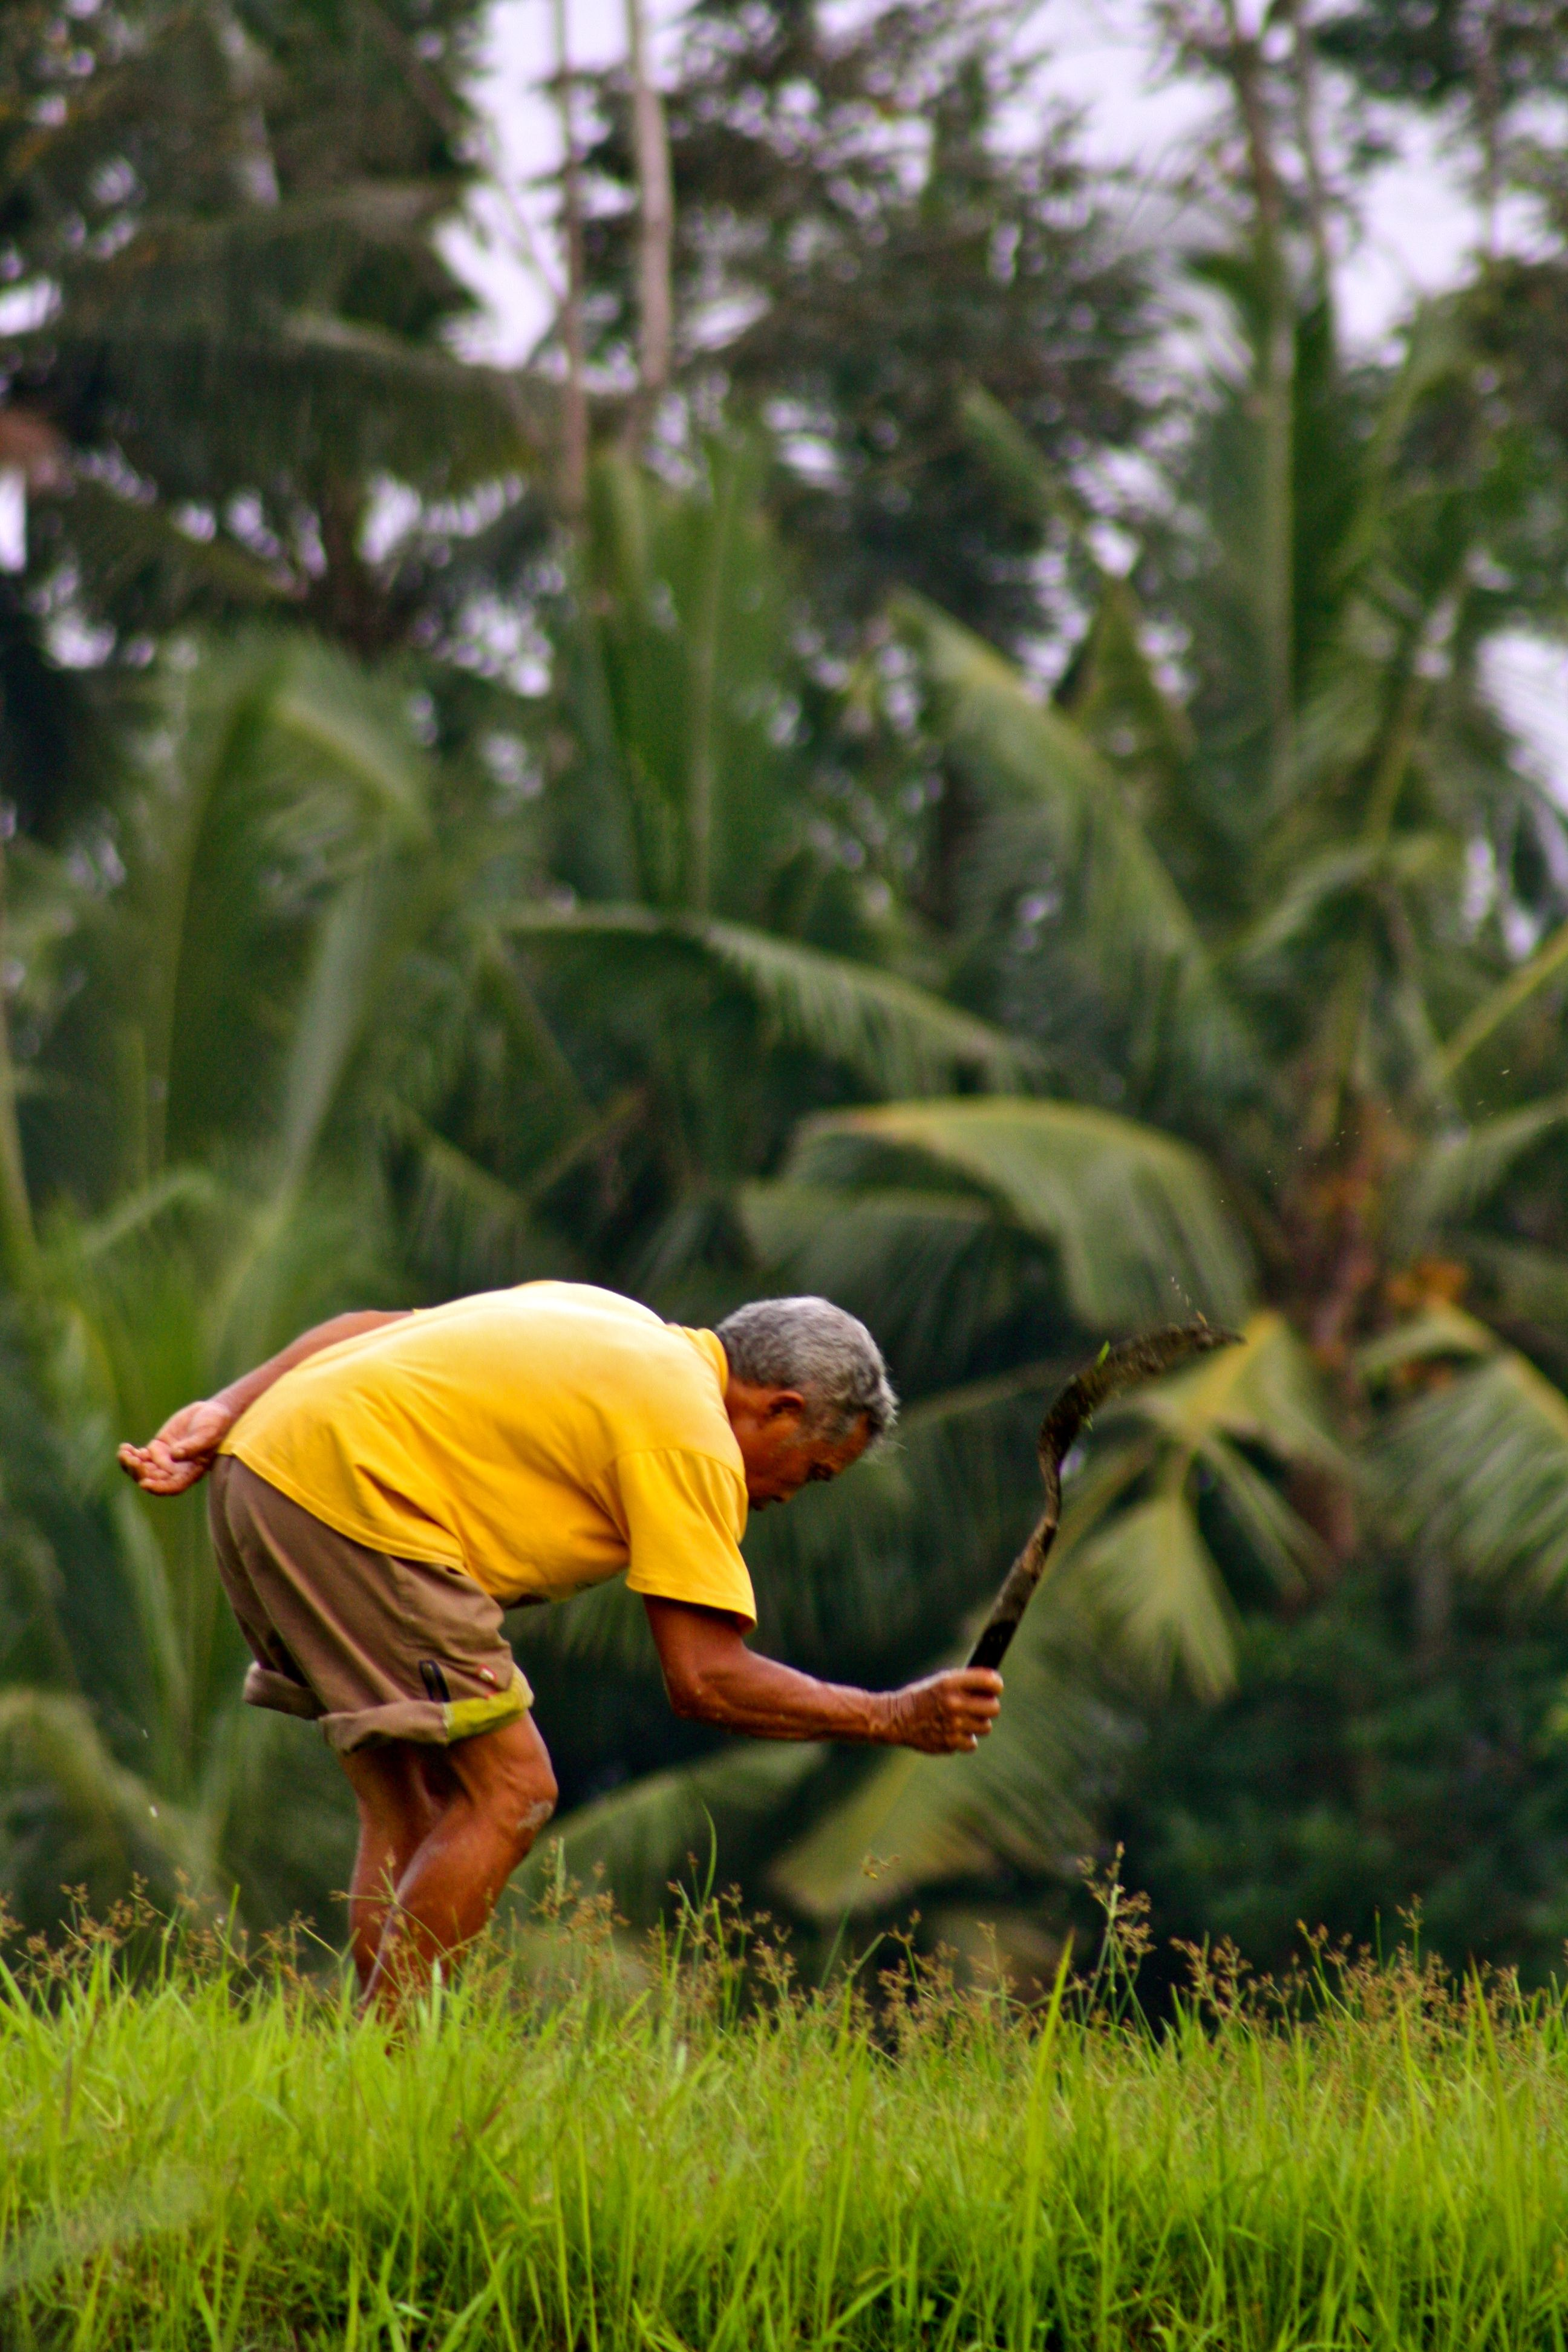 Attending to his paddy field. Ubud, Bali, Indonesia